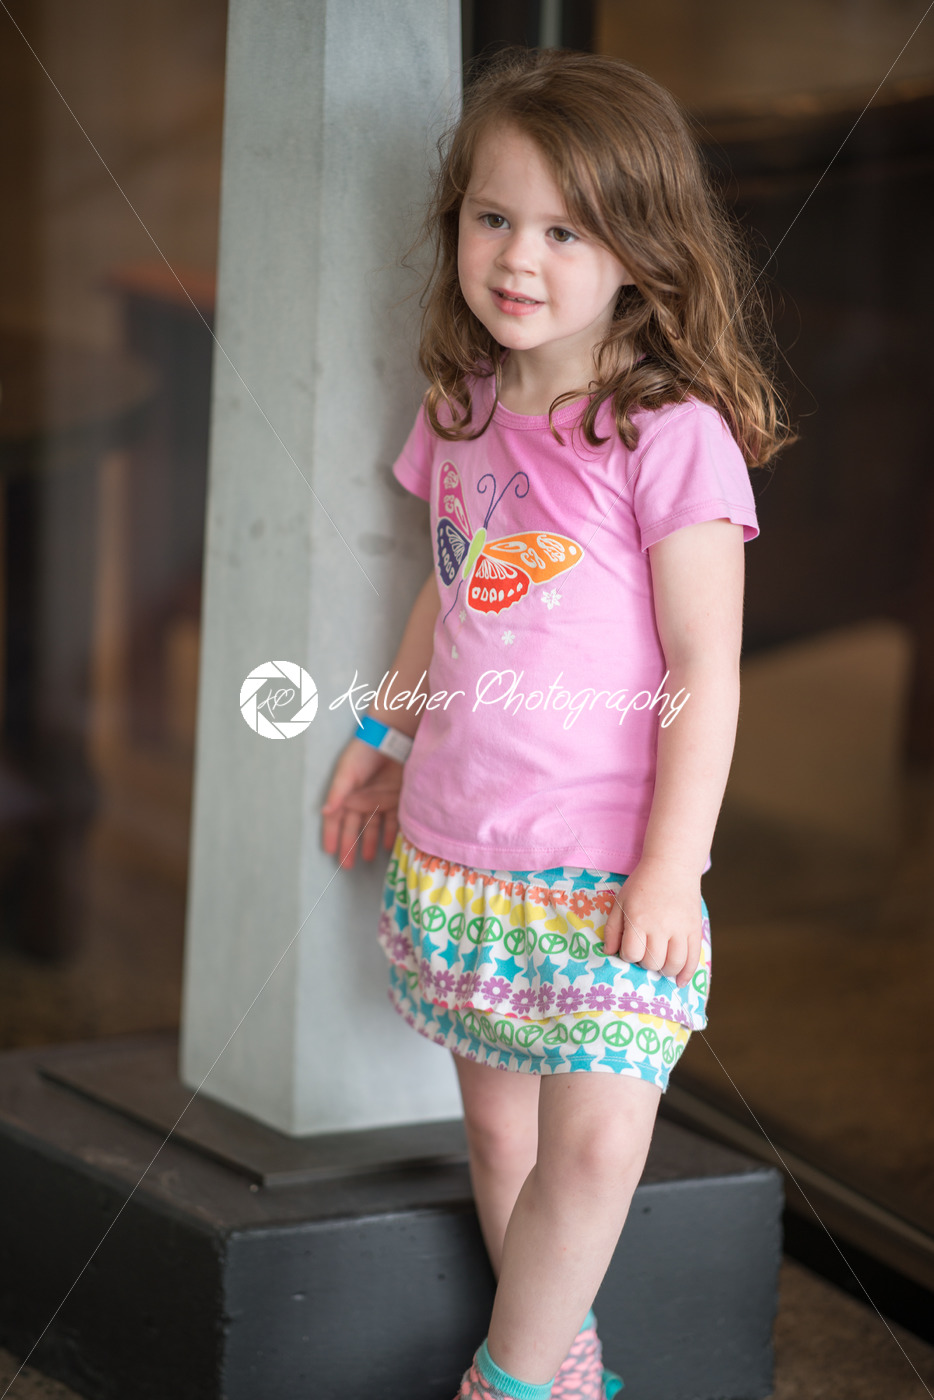 Save up to 70% on the cutest collection of girls' clothing, shoes and more. Shop zulily for great deals every day on clothes, toys and bedding for girls.